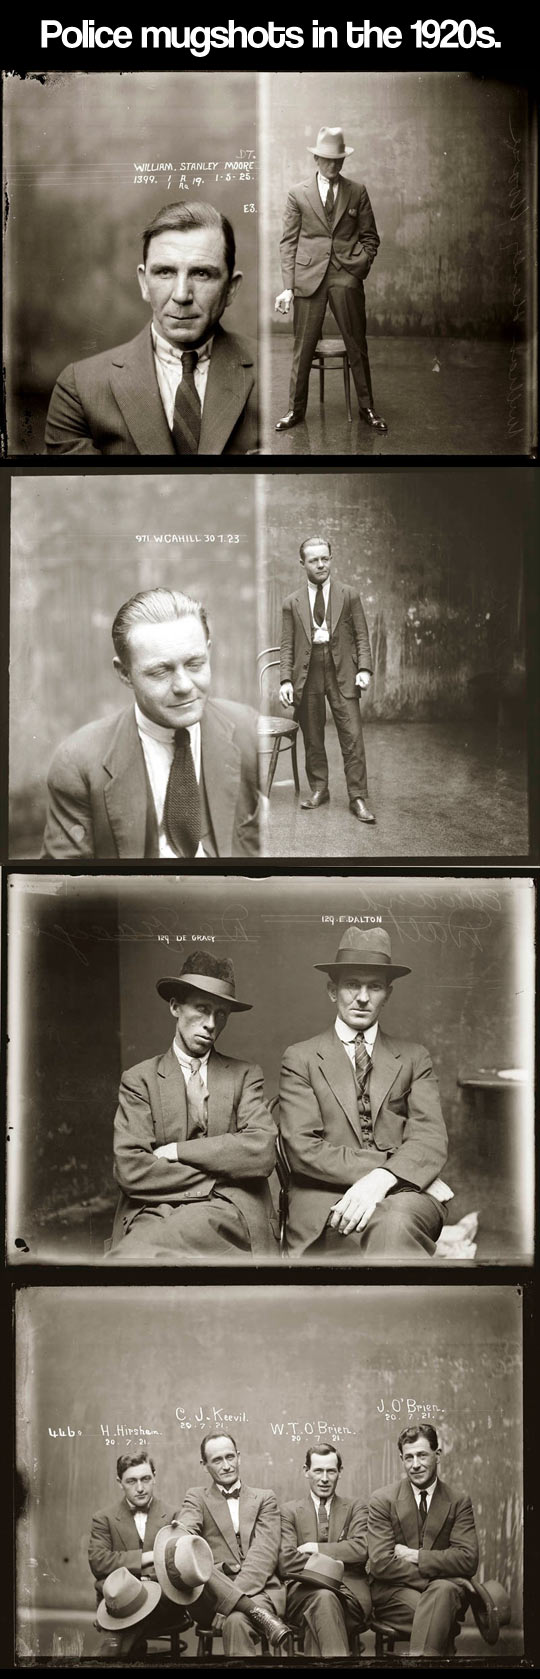 Police mugshots in the 1920s